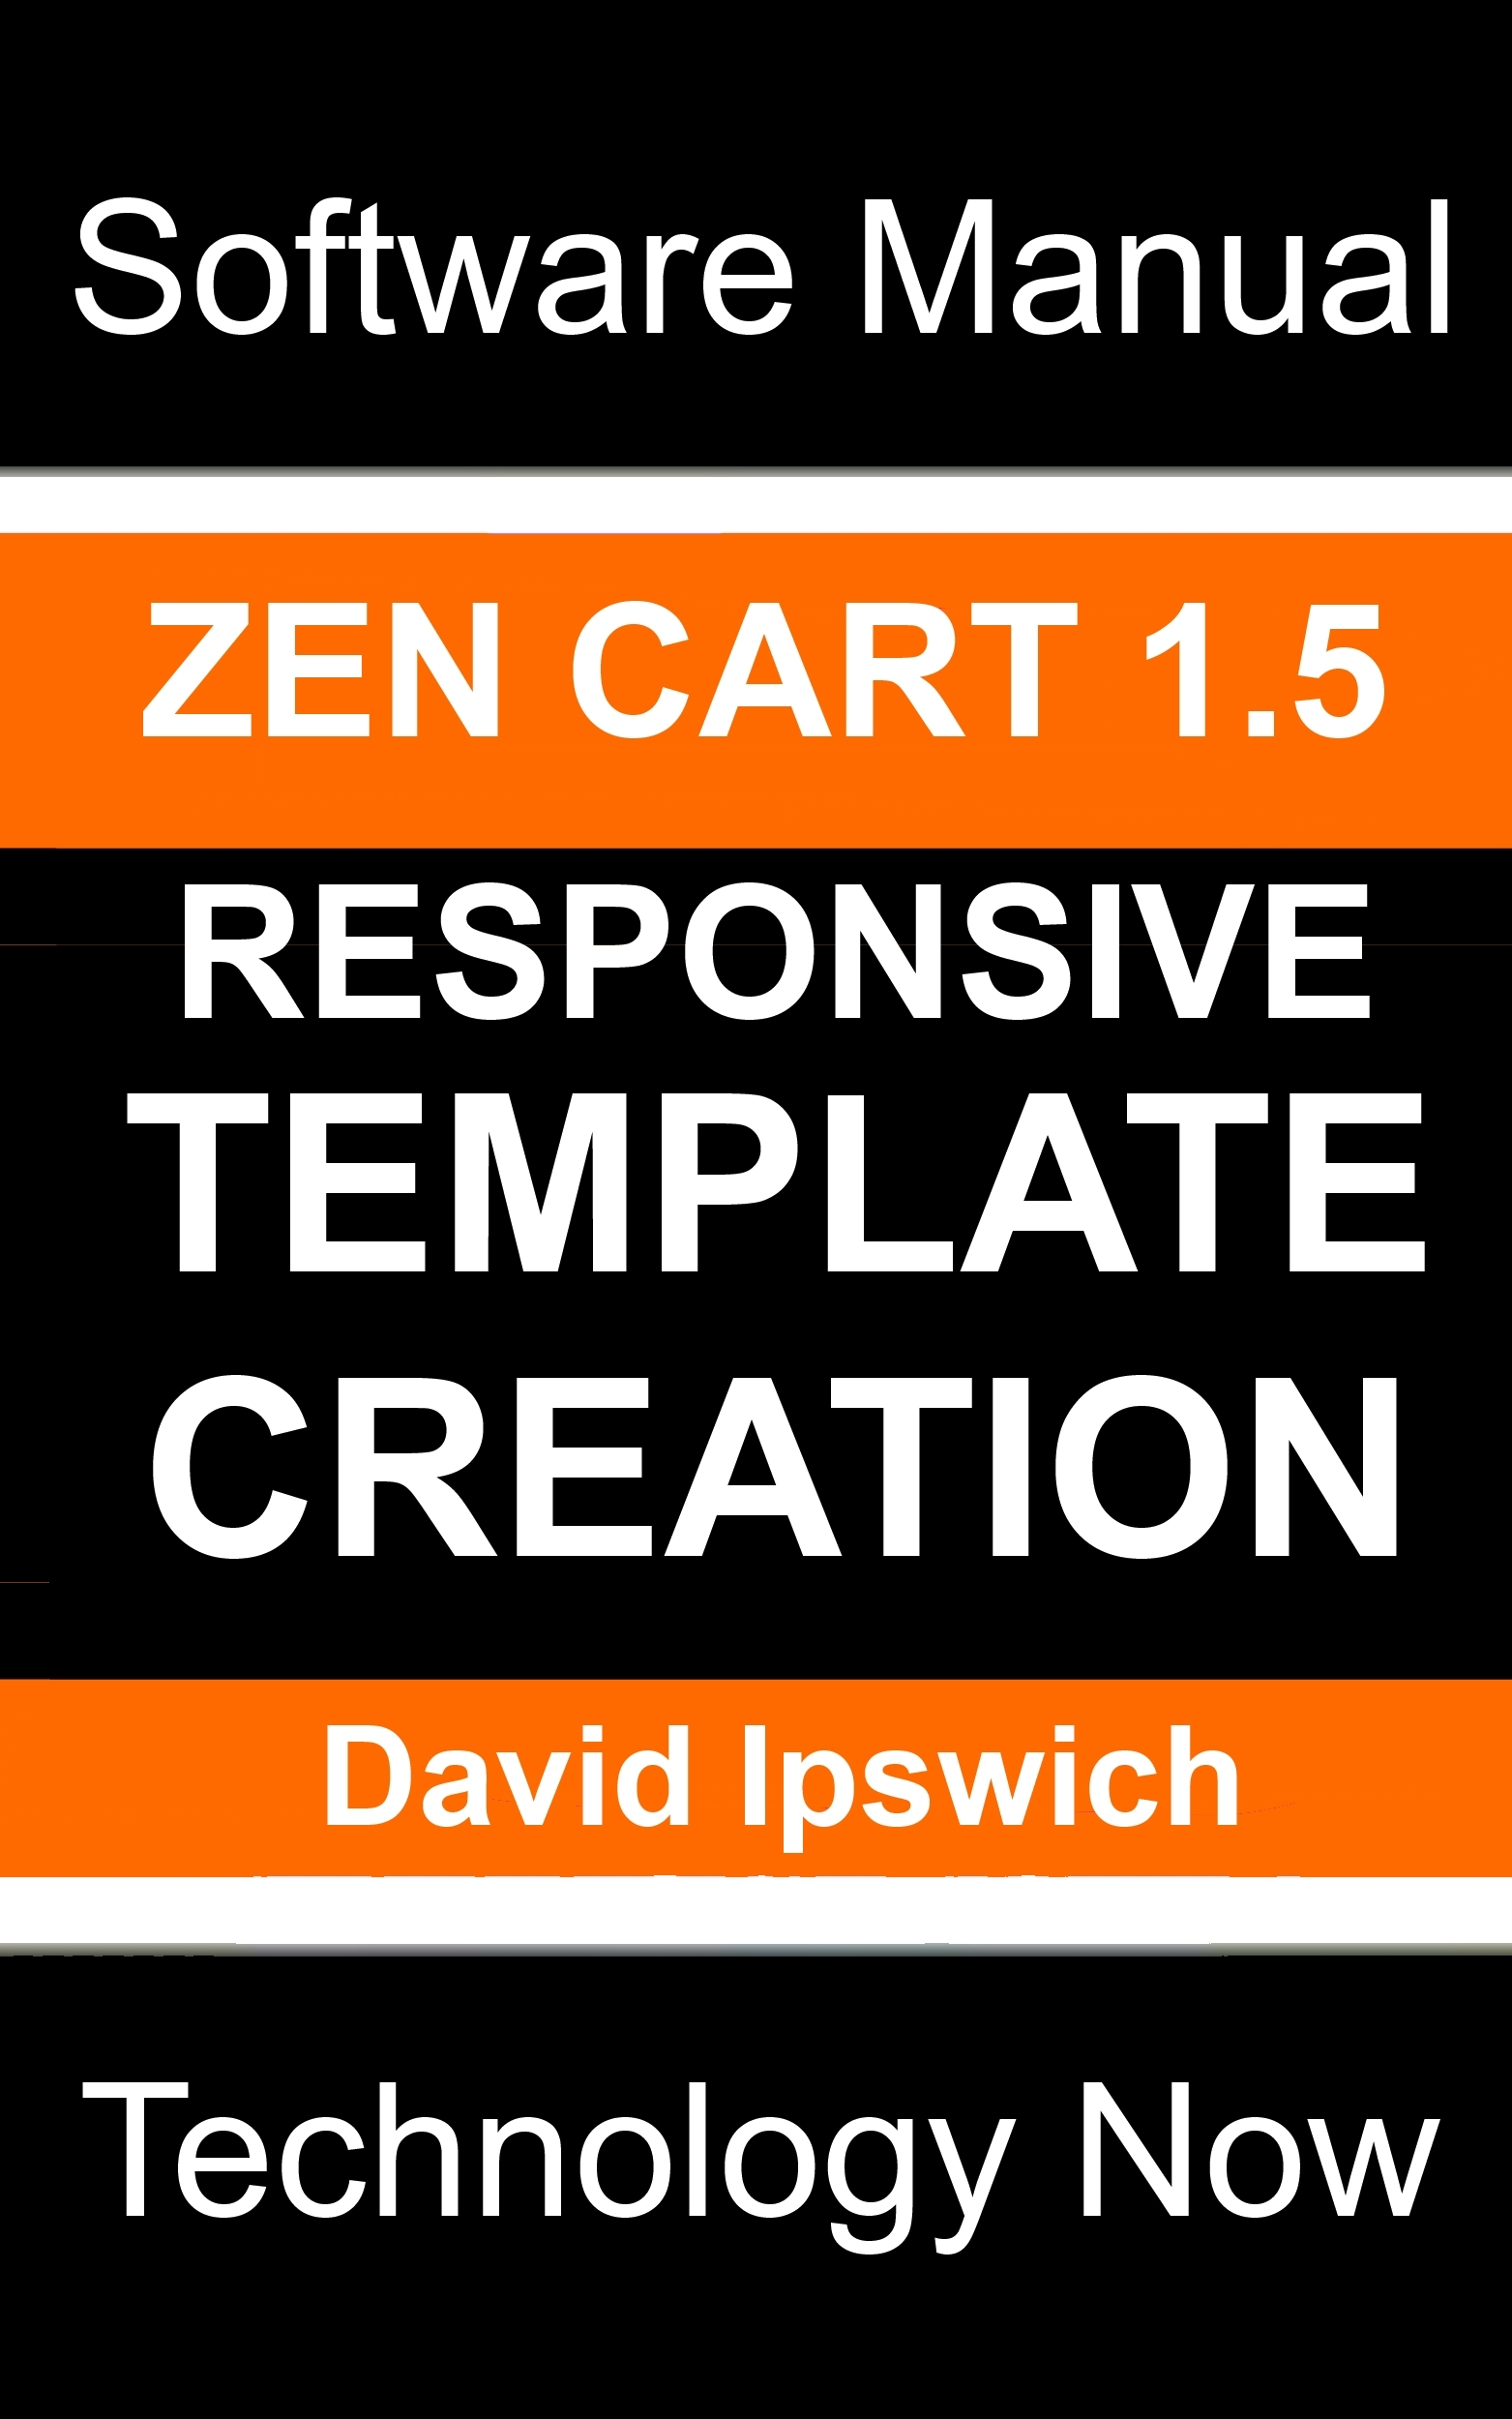 Zen Cart 1.5 Responsive Template Creation